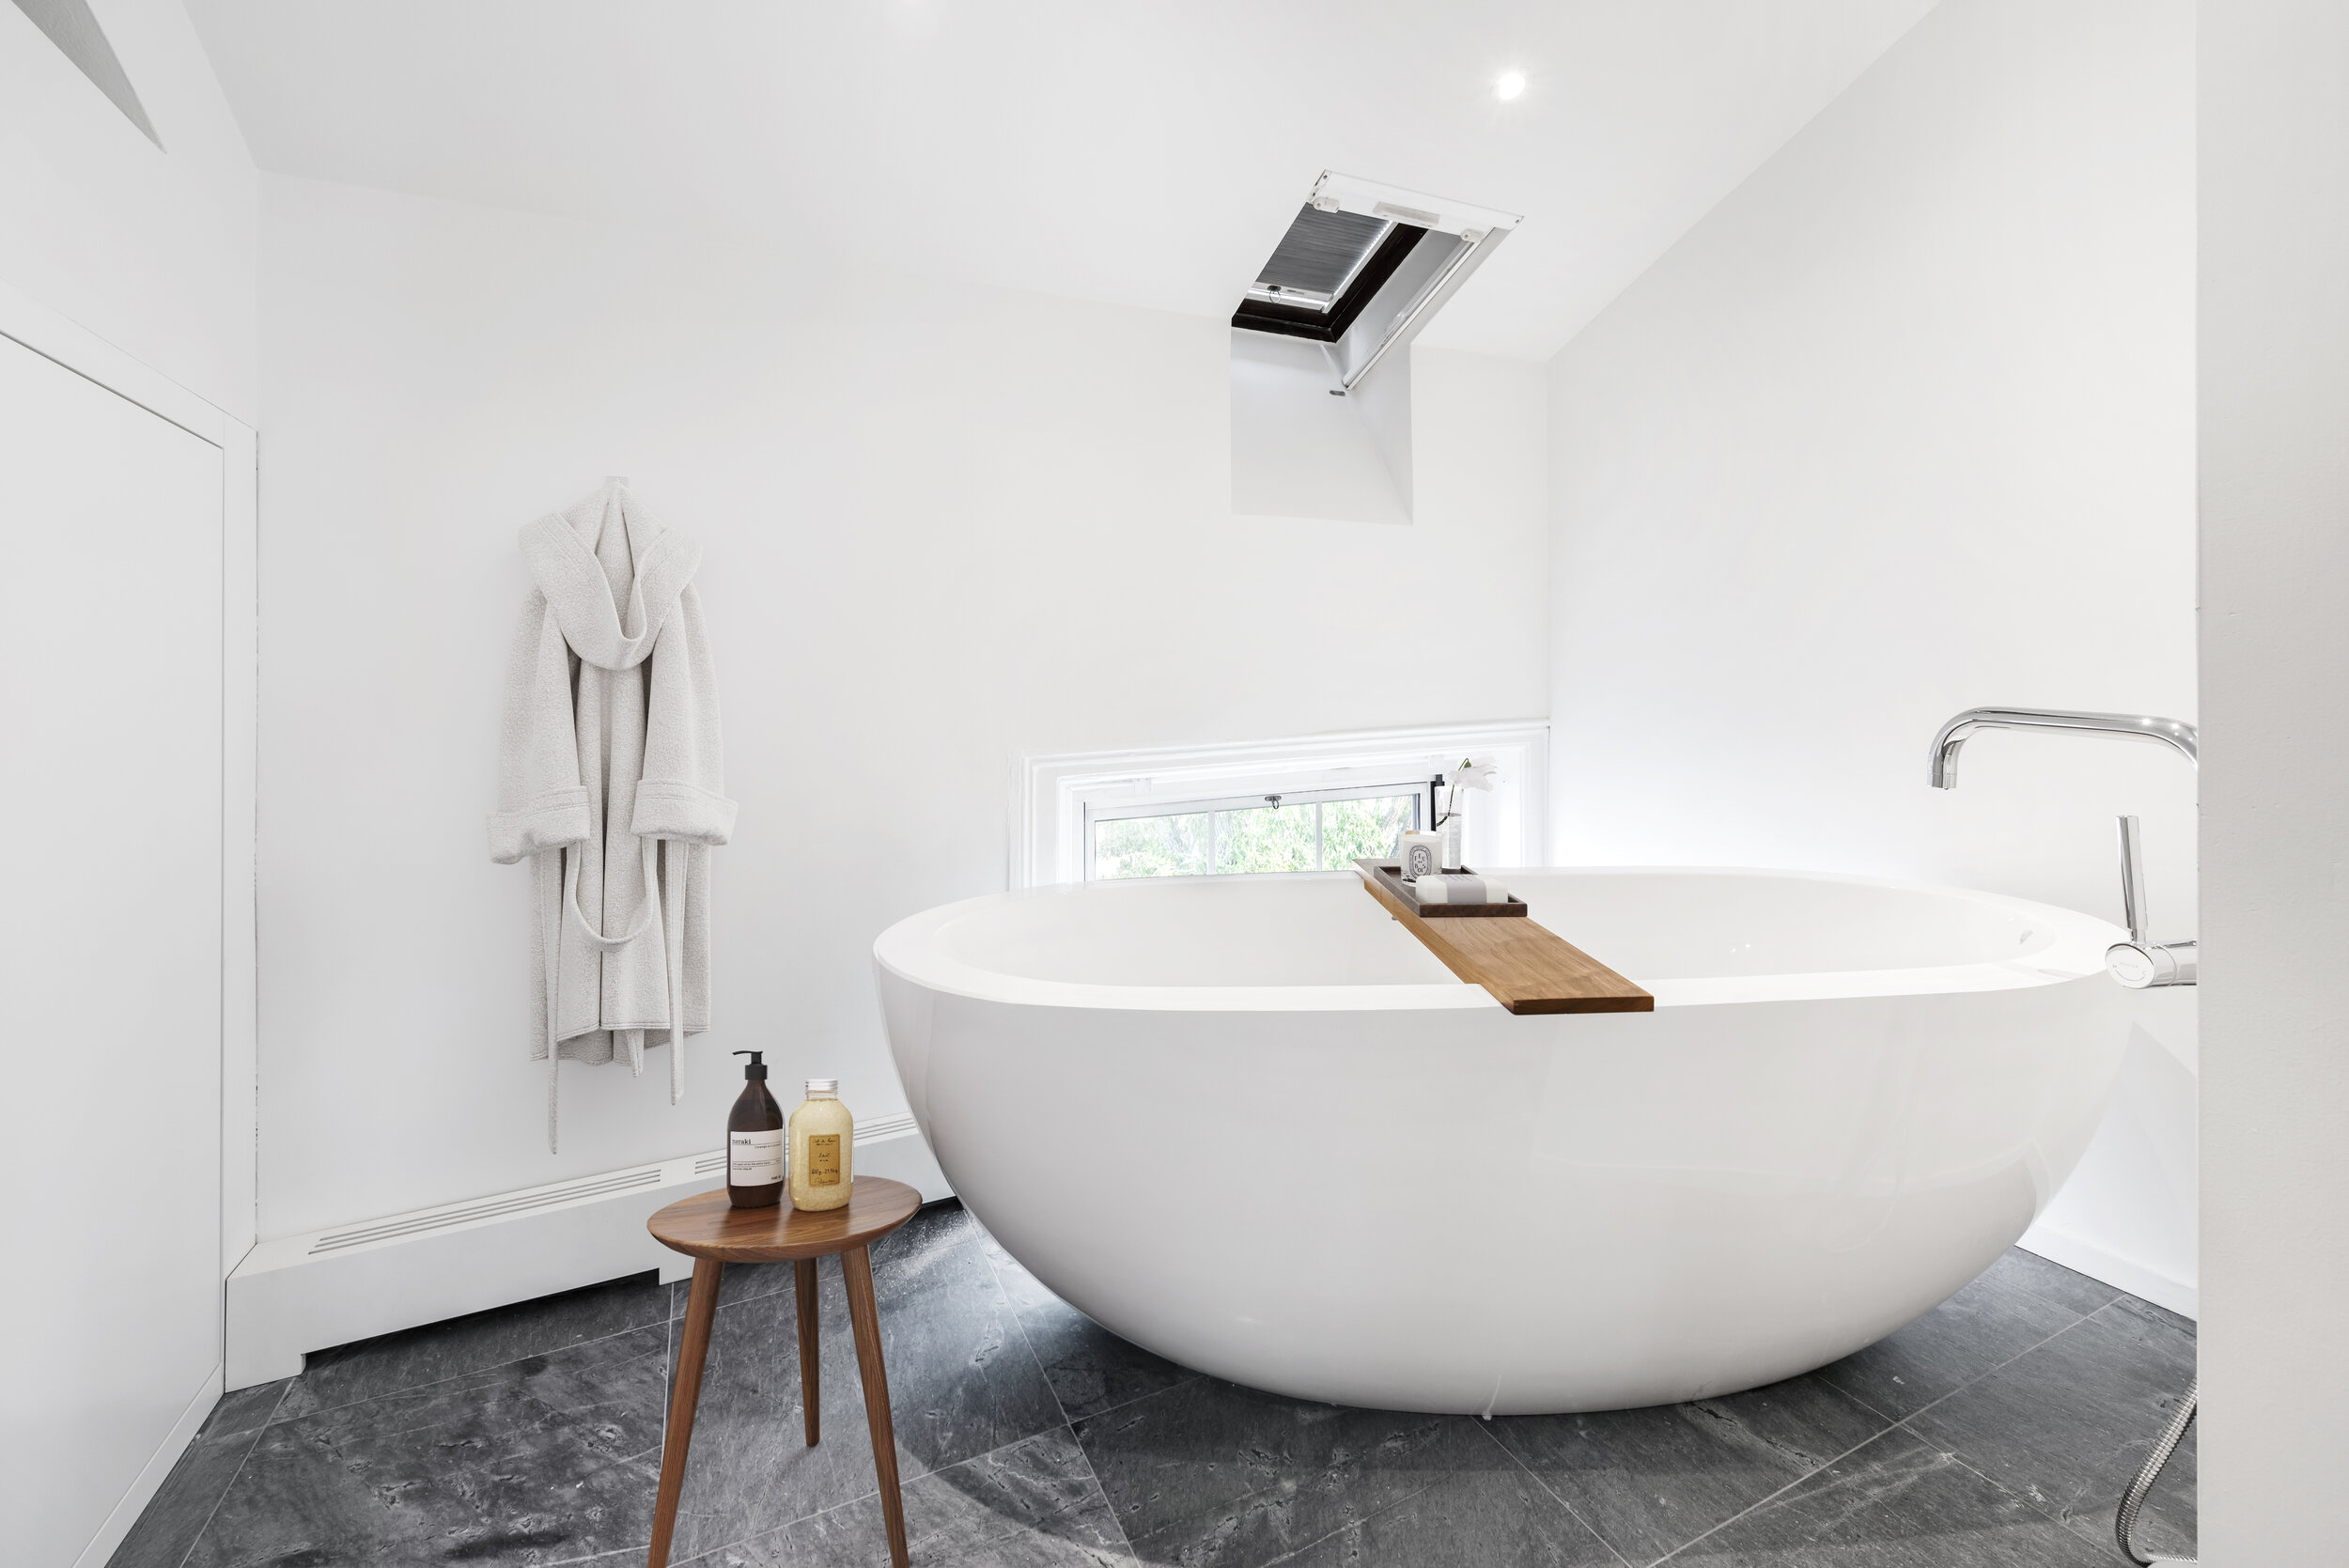 The homeowners invested in a tranquil master bathroom that included a freestanding soaking tub.